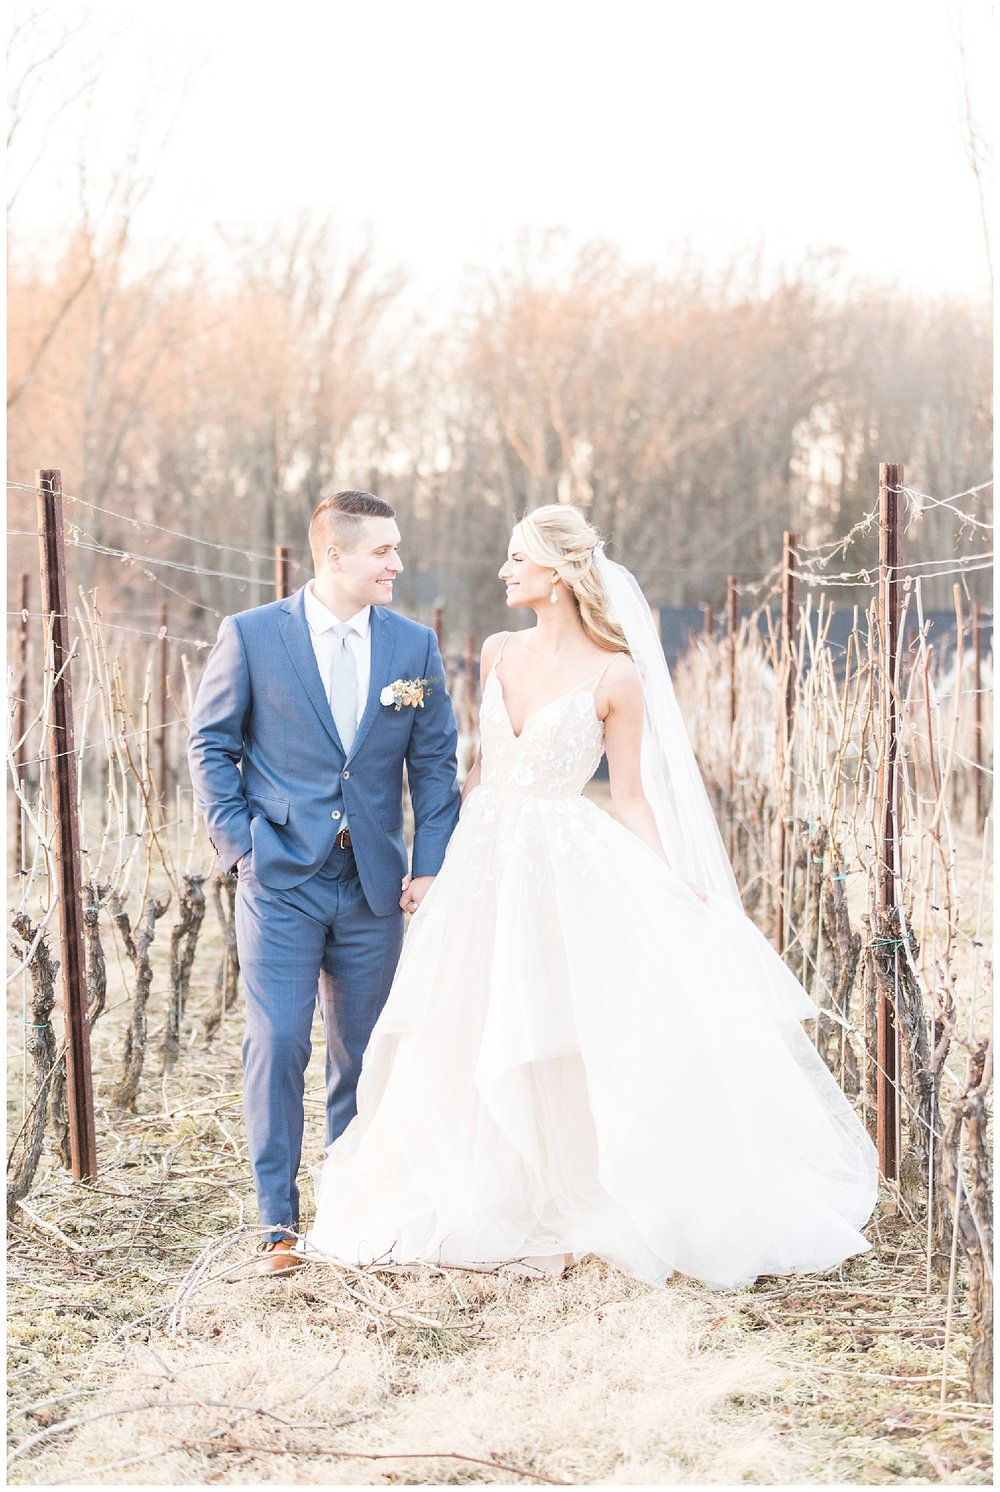 Brandywine Valley Weddings | Inn at Grace Winery | Glen Mills, PA | www.redoakweddings.com